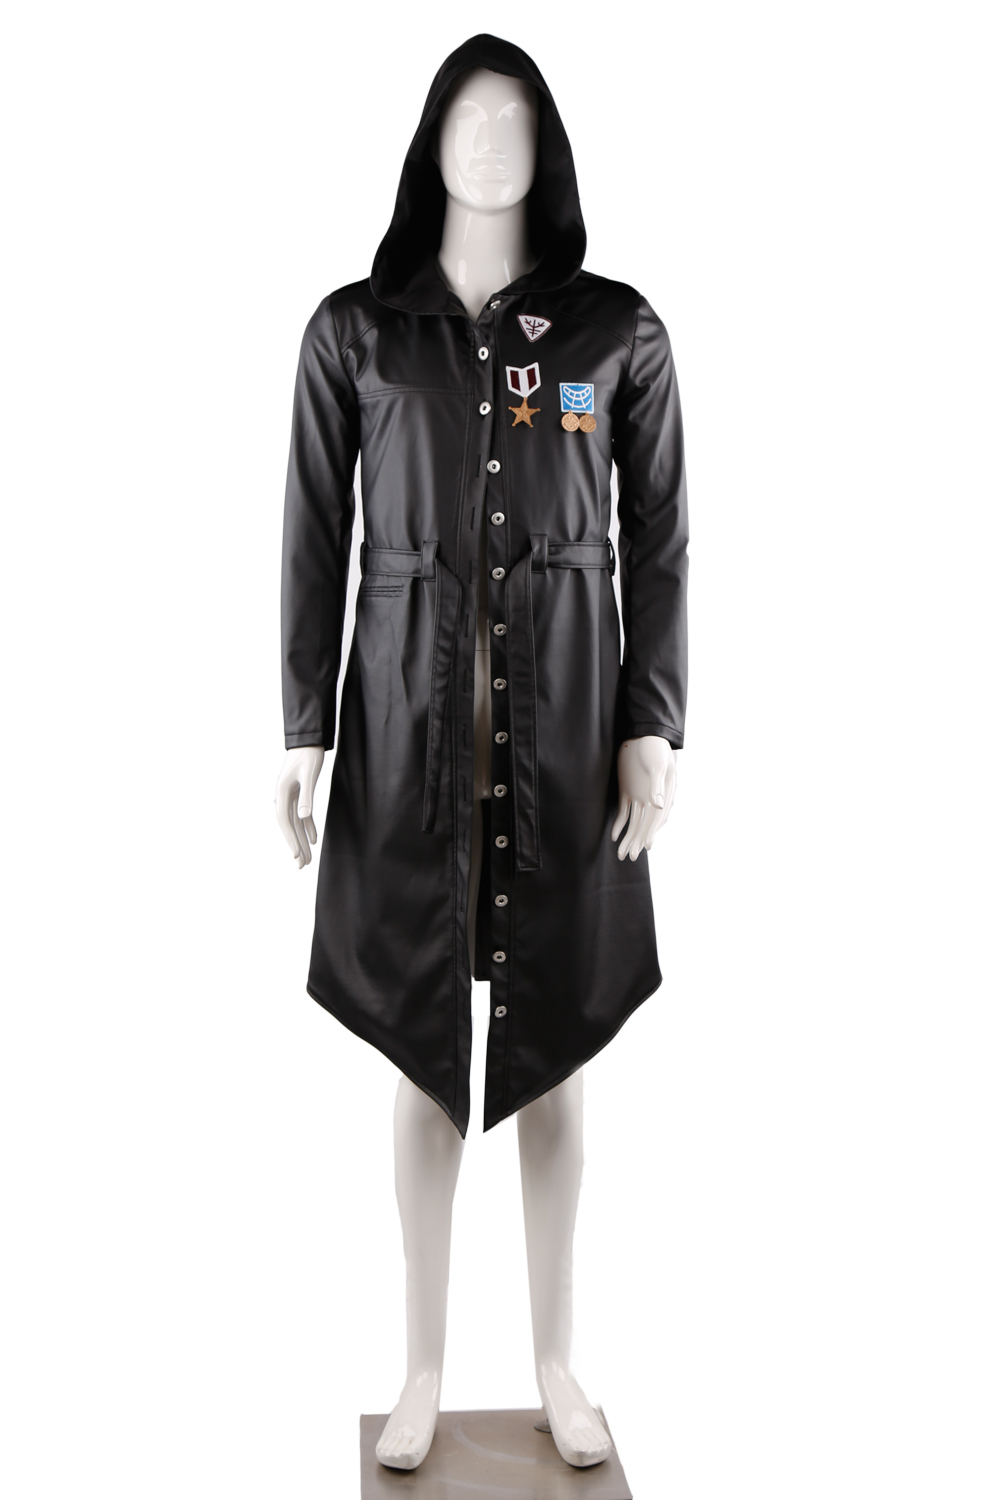 Playerunknowns Battlegrounds PUBG Trench Coat Cosplay